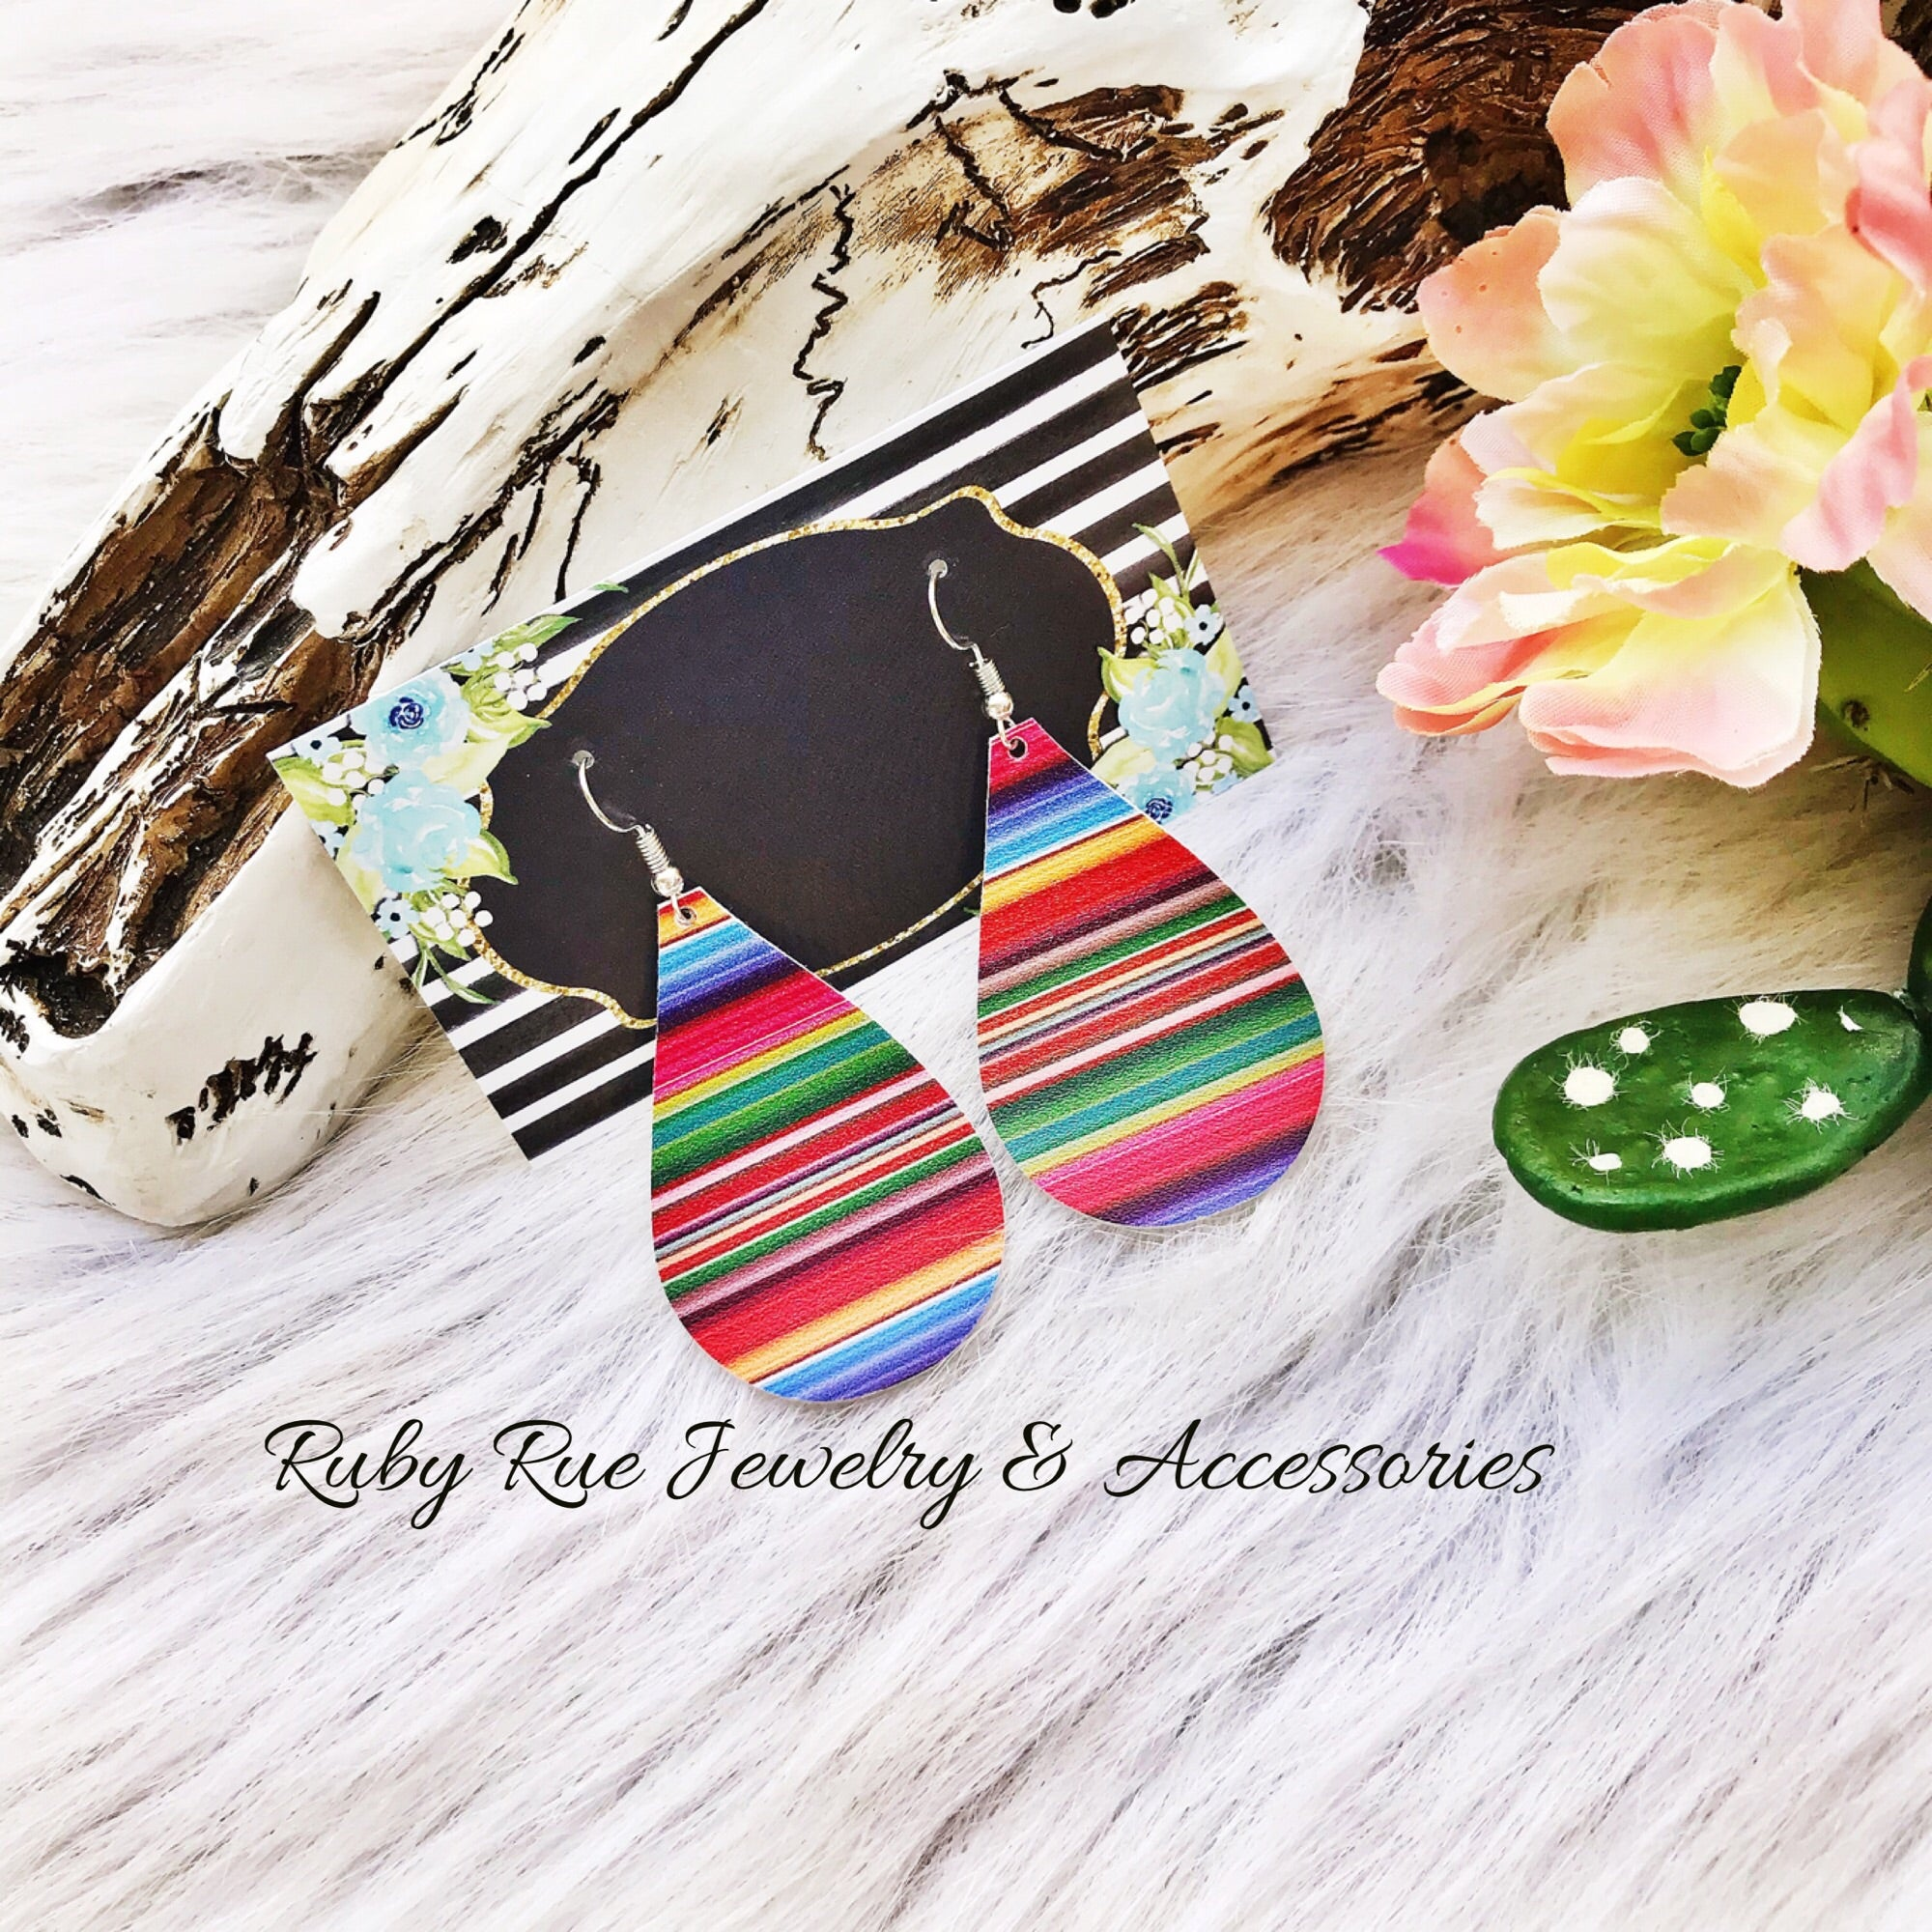 Serape Earrings - Ruby Rue Jewelry & Accessories